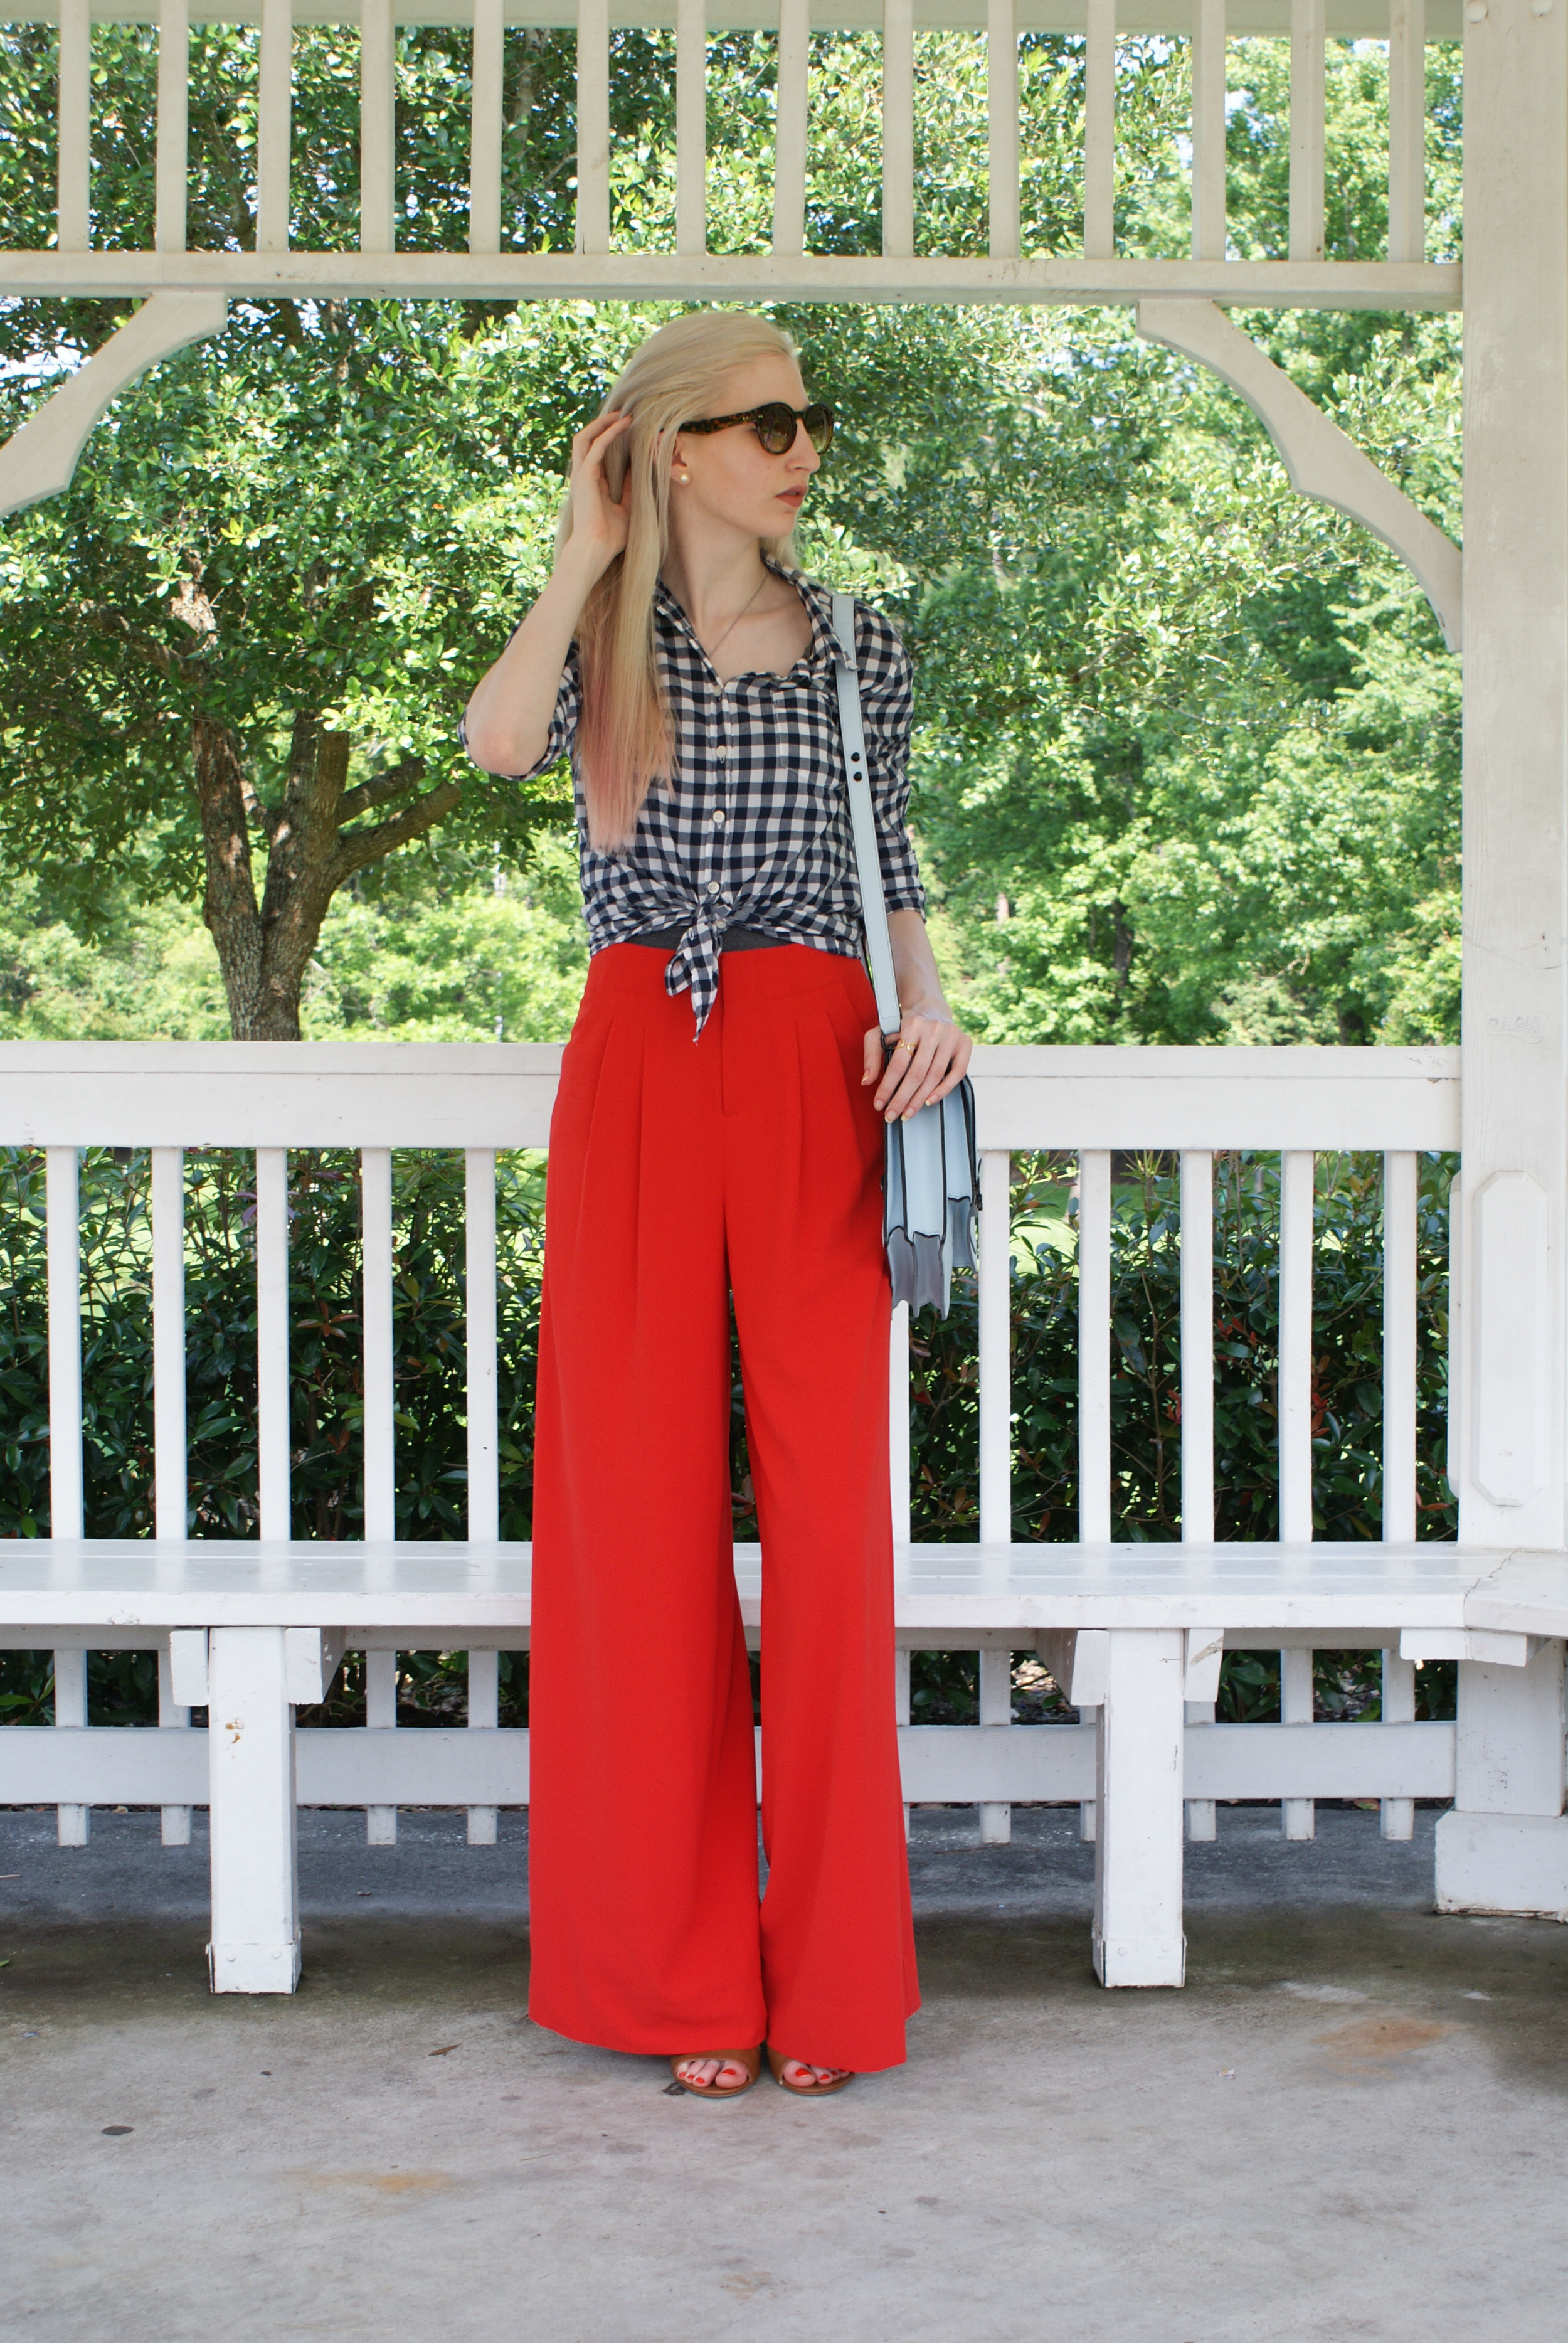 Alice & Olivia orange wide leg pant, jcrew button down in navy gingham - Southern New Yorker